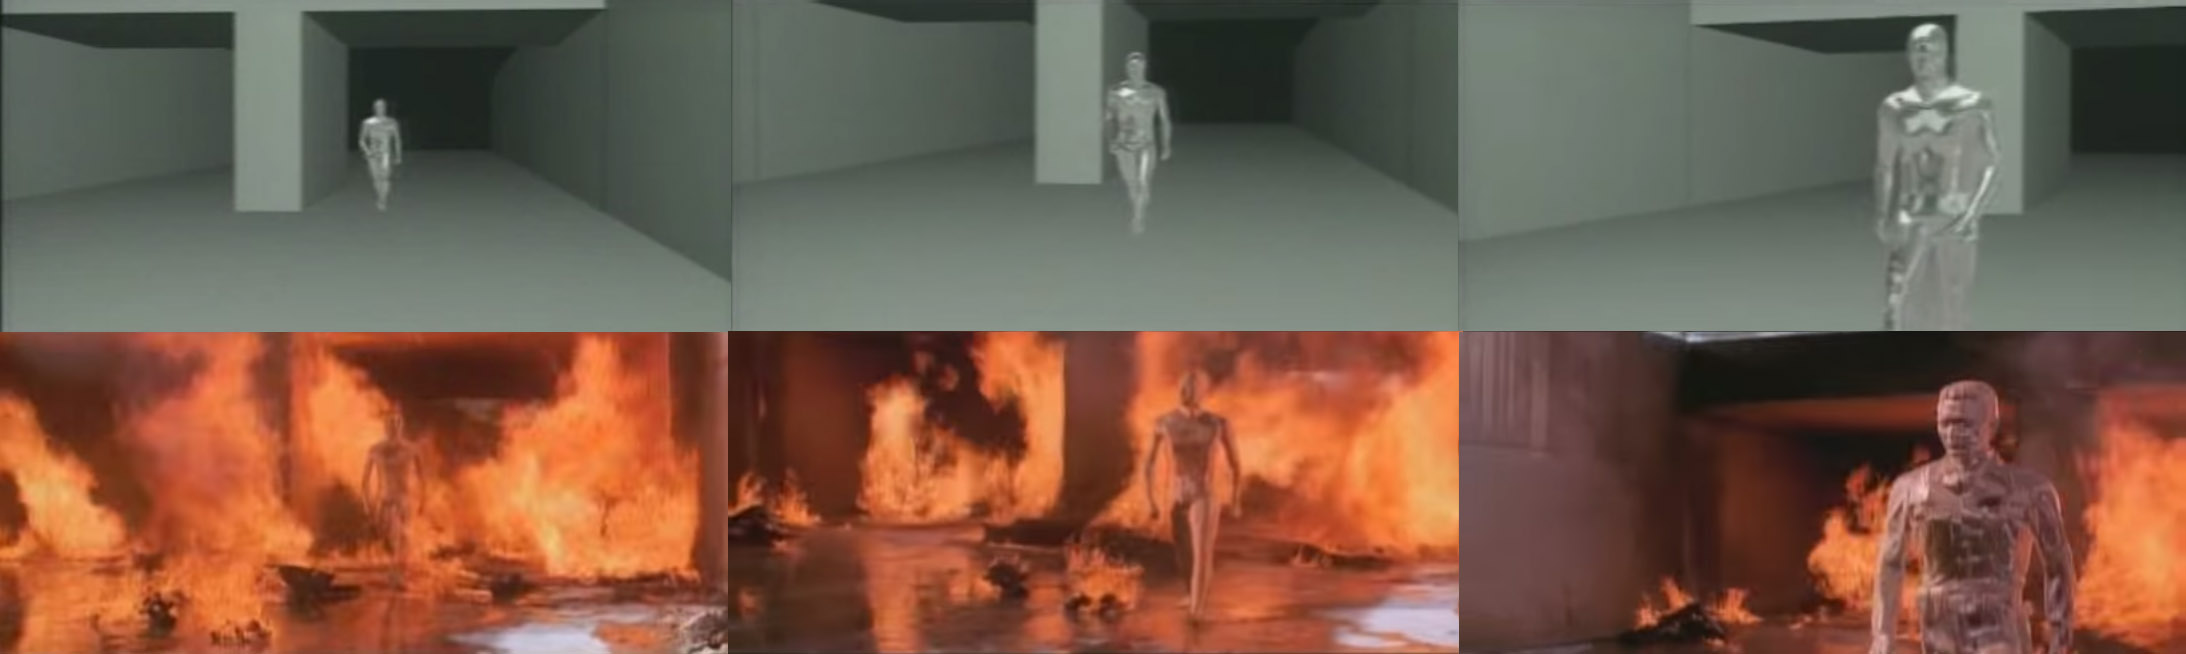 T1000 animation in fire